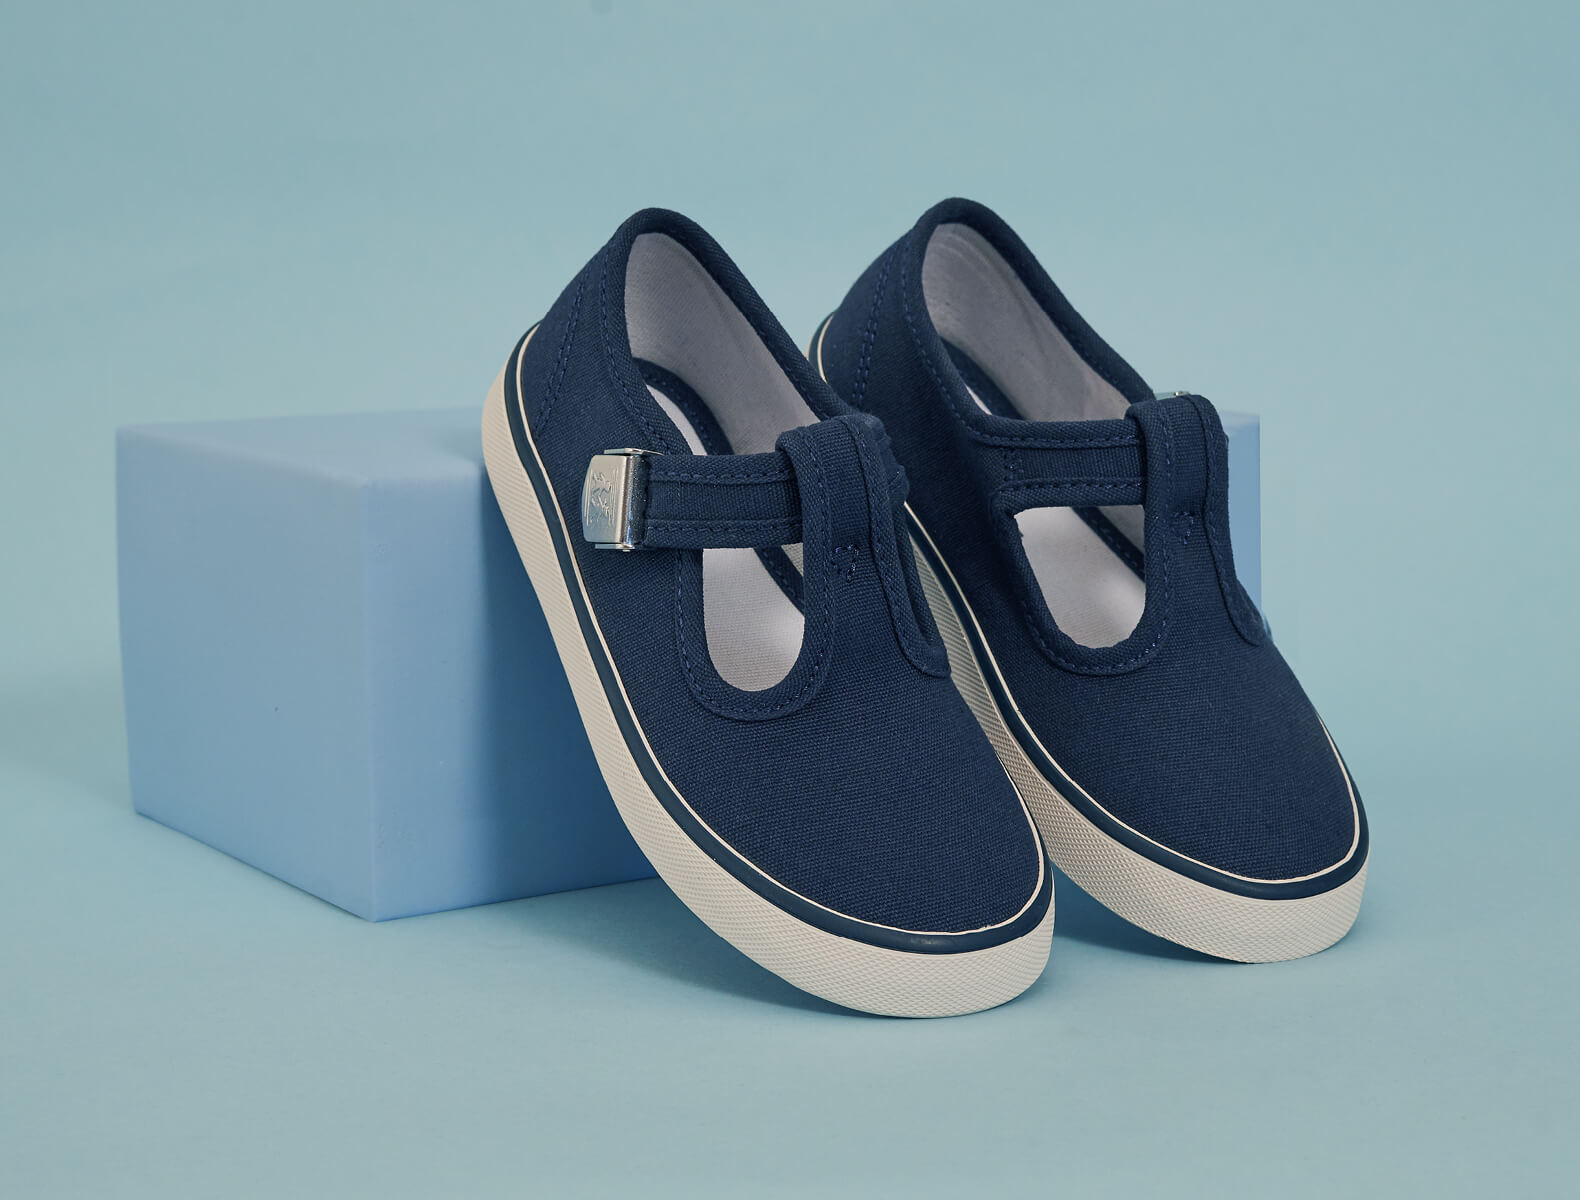 Canvas shoes perfect for sunny days